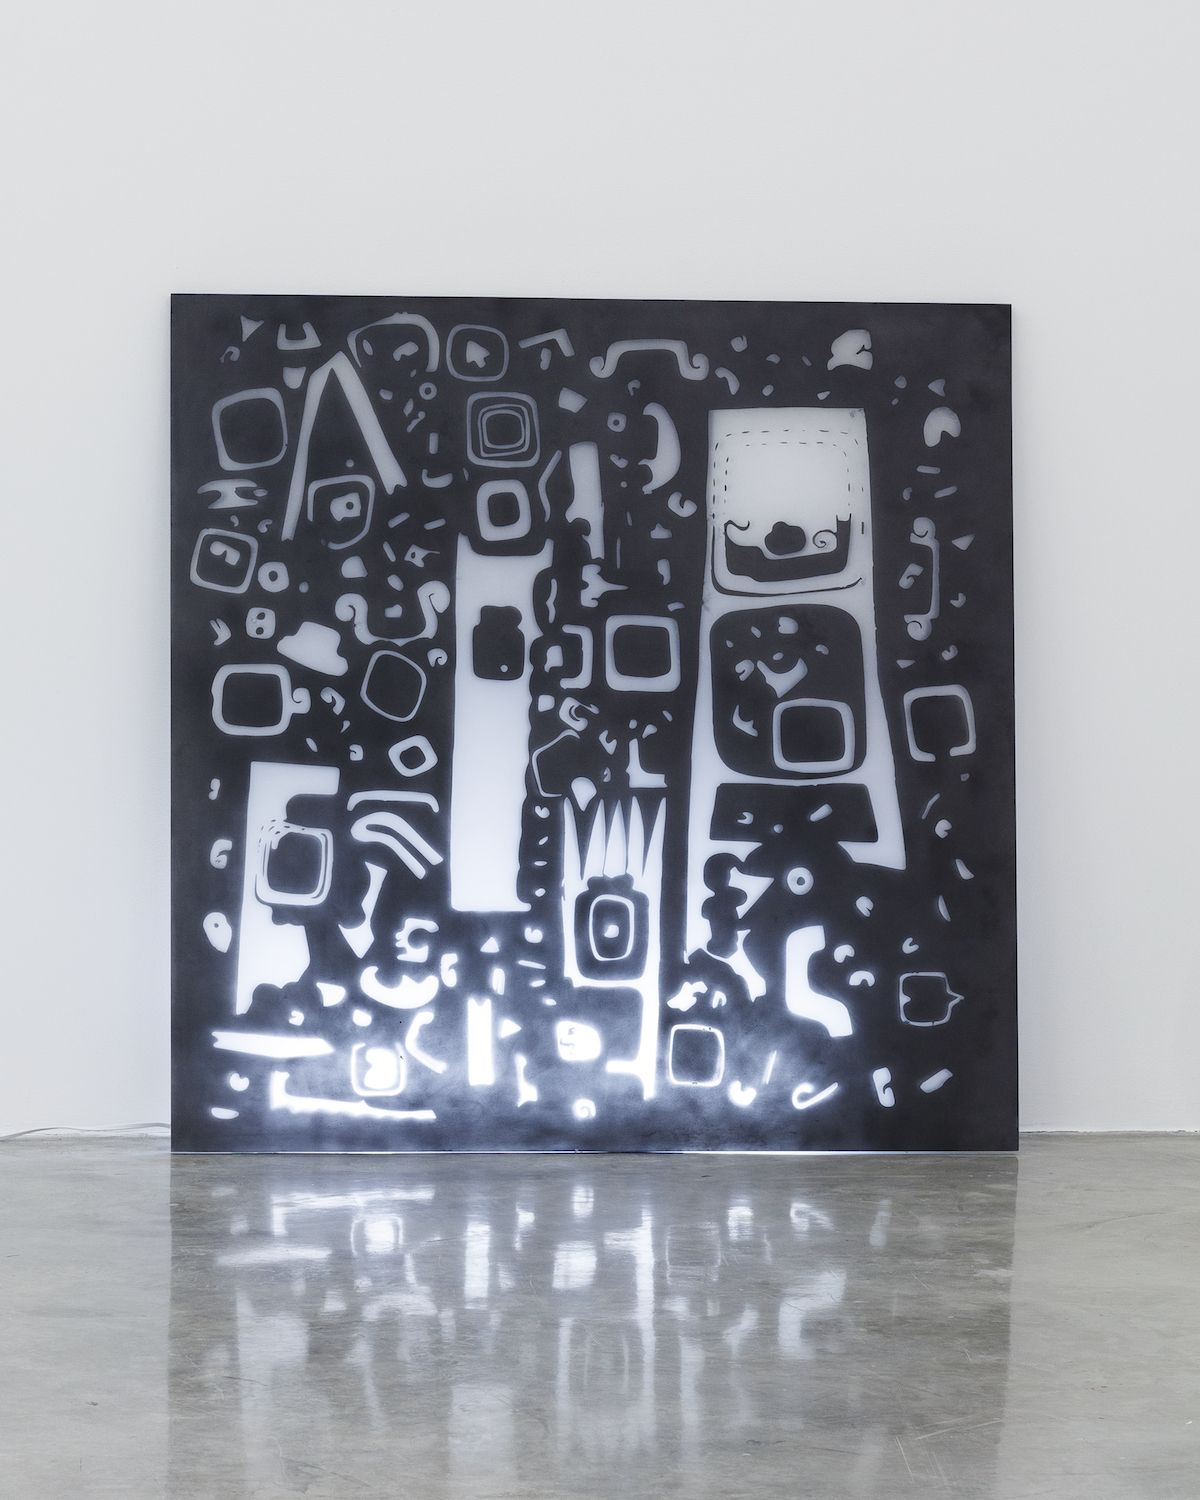 Group Show with Commonwealth and Council: Gala Porras-Kim